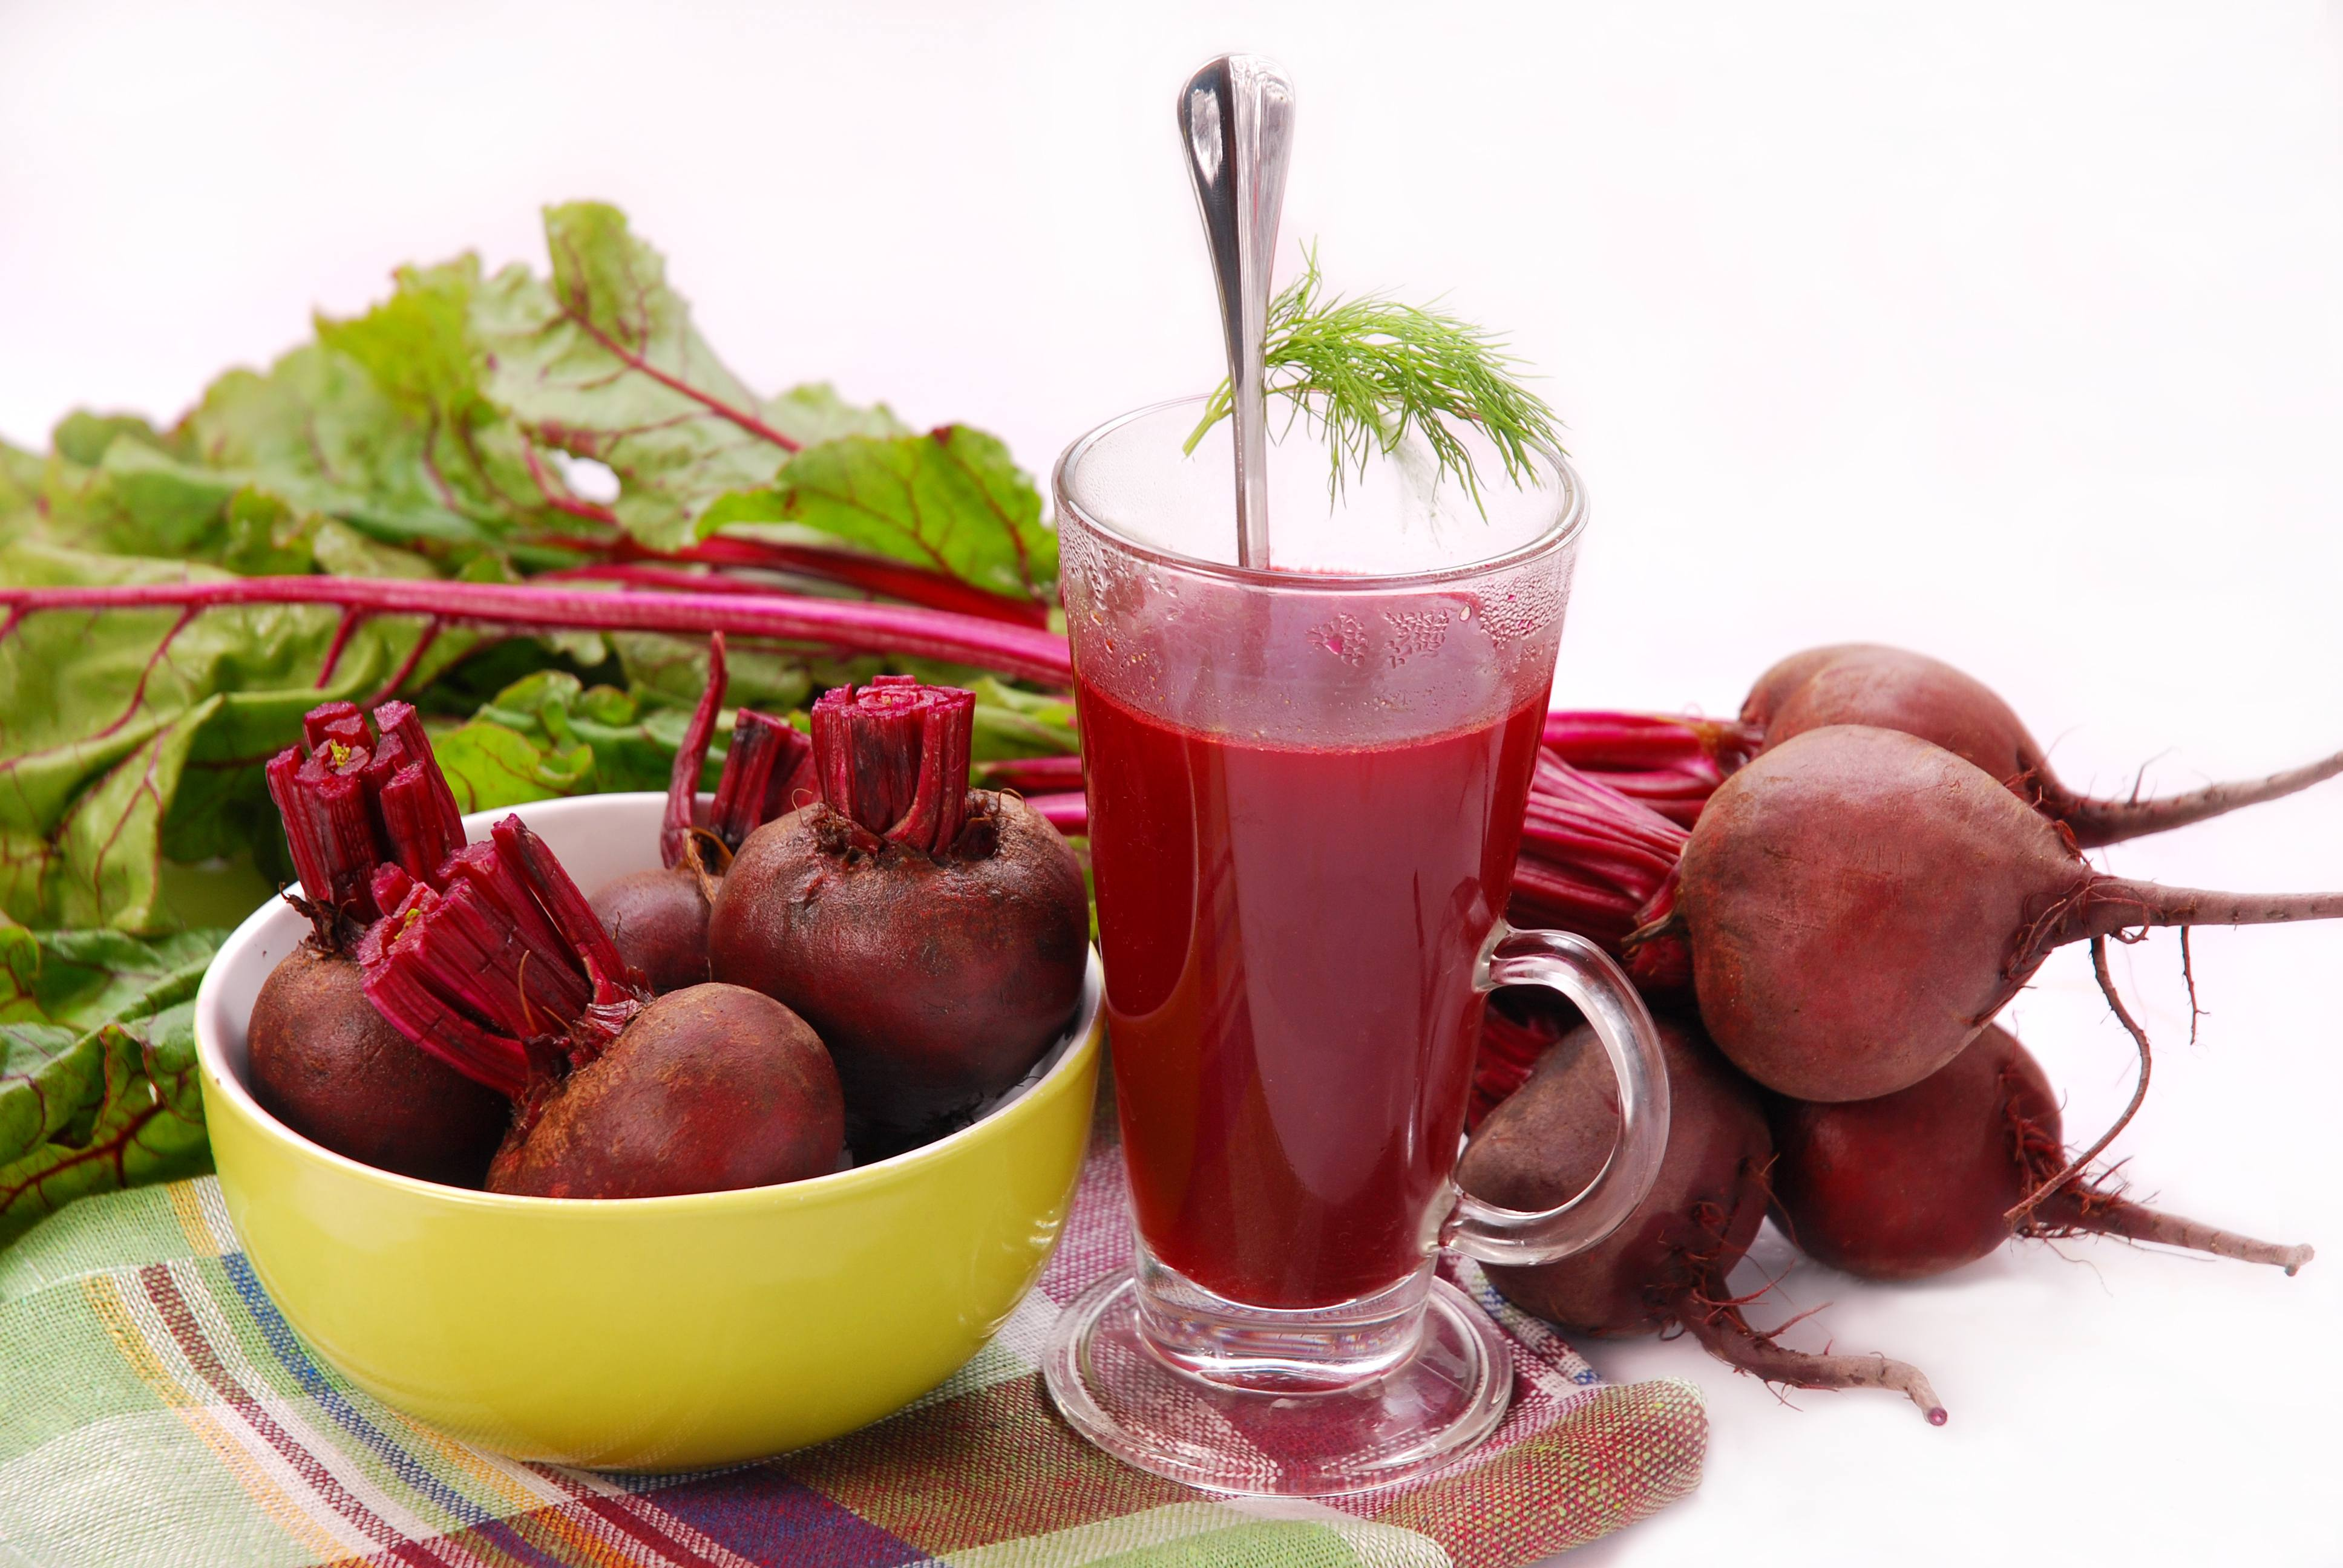 Beetroot Juice Reduces High Blood Pressure